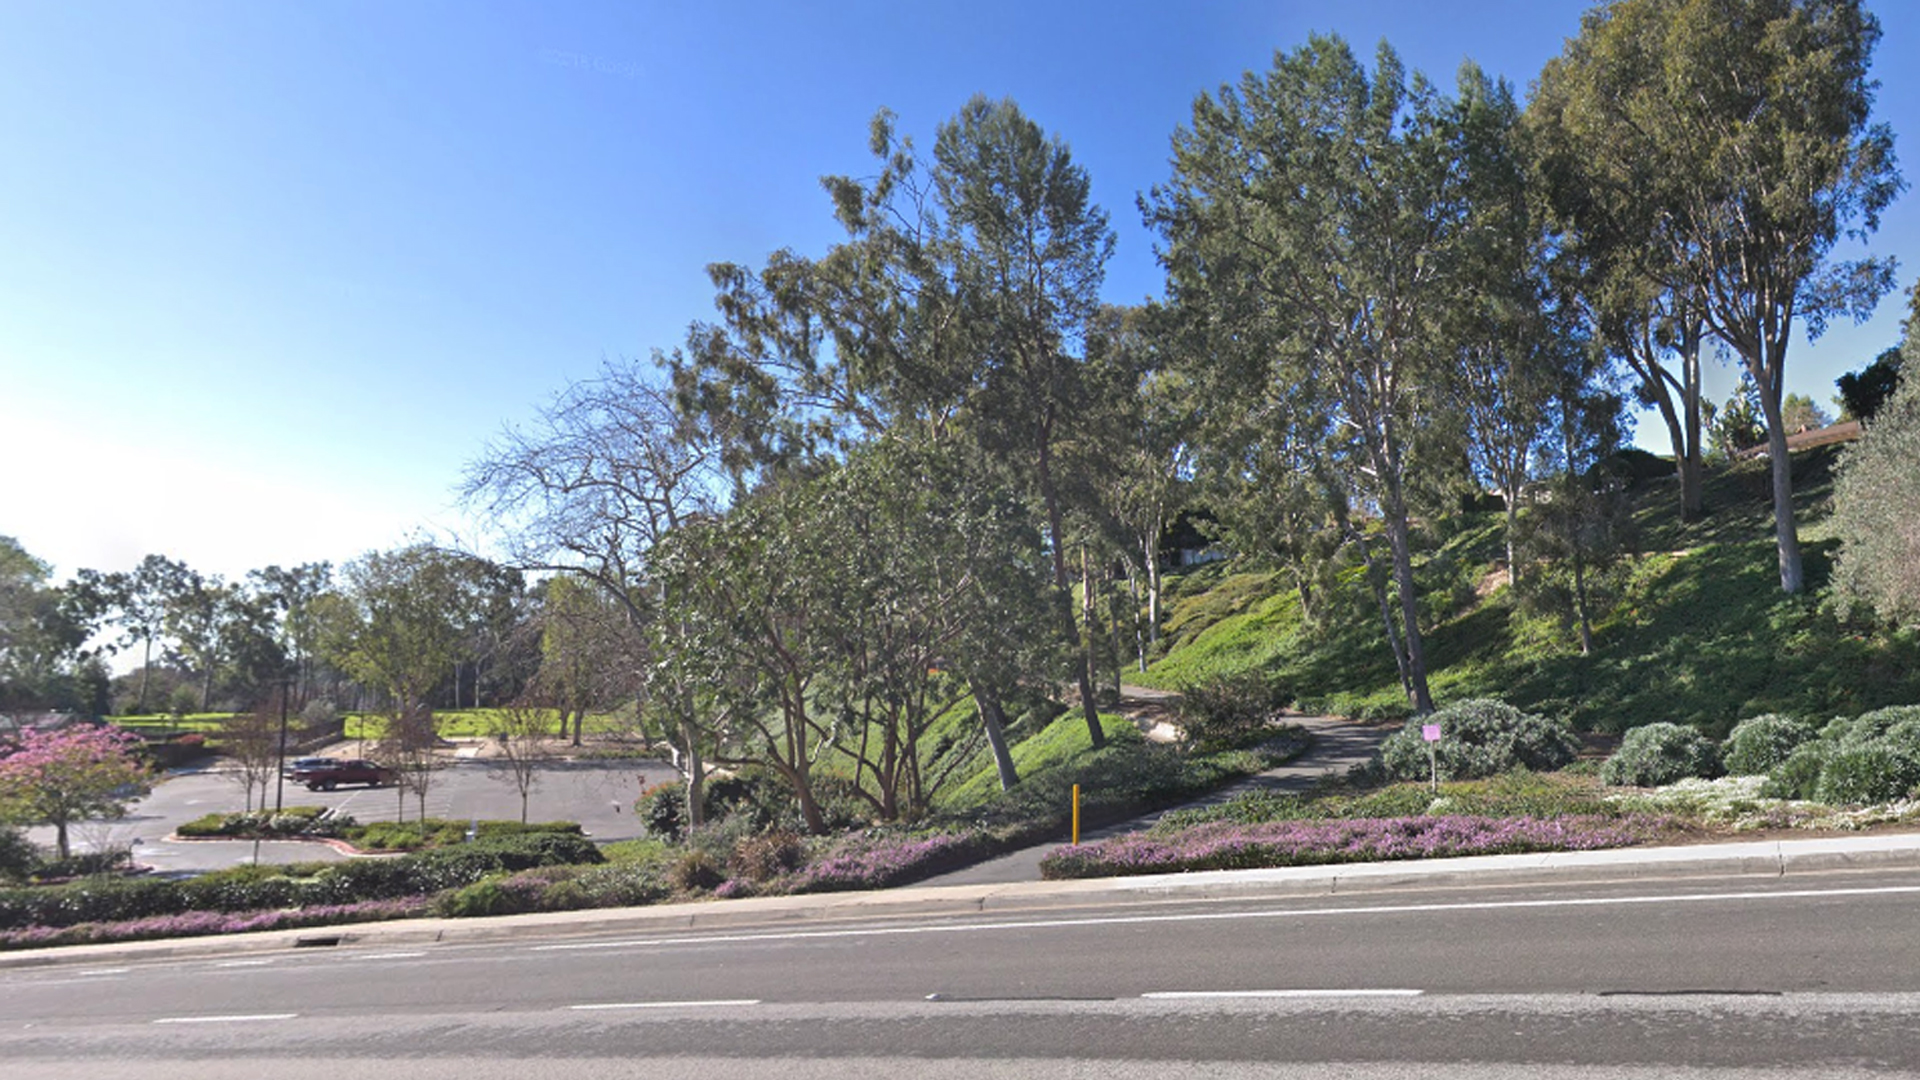 The parking lot of Niguel Woods Park in Laguna Niguel is seen in a Google Maps Street View image from February 2018.